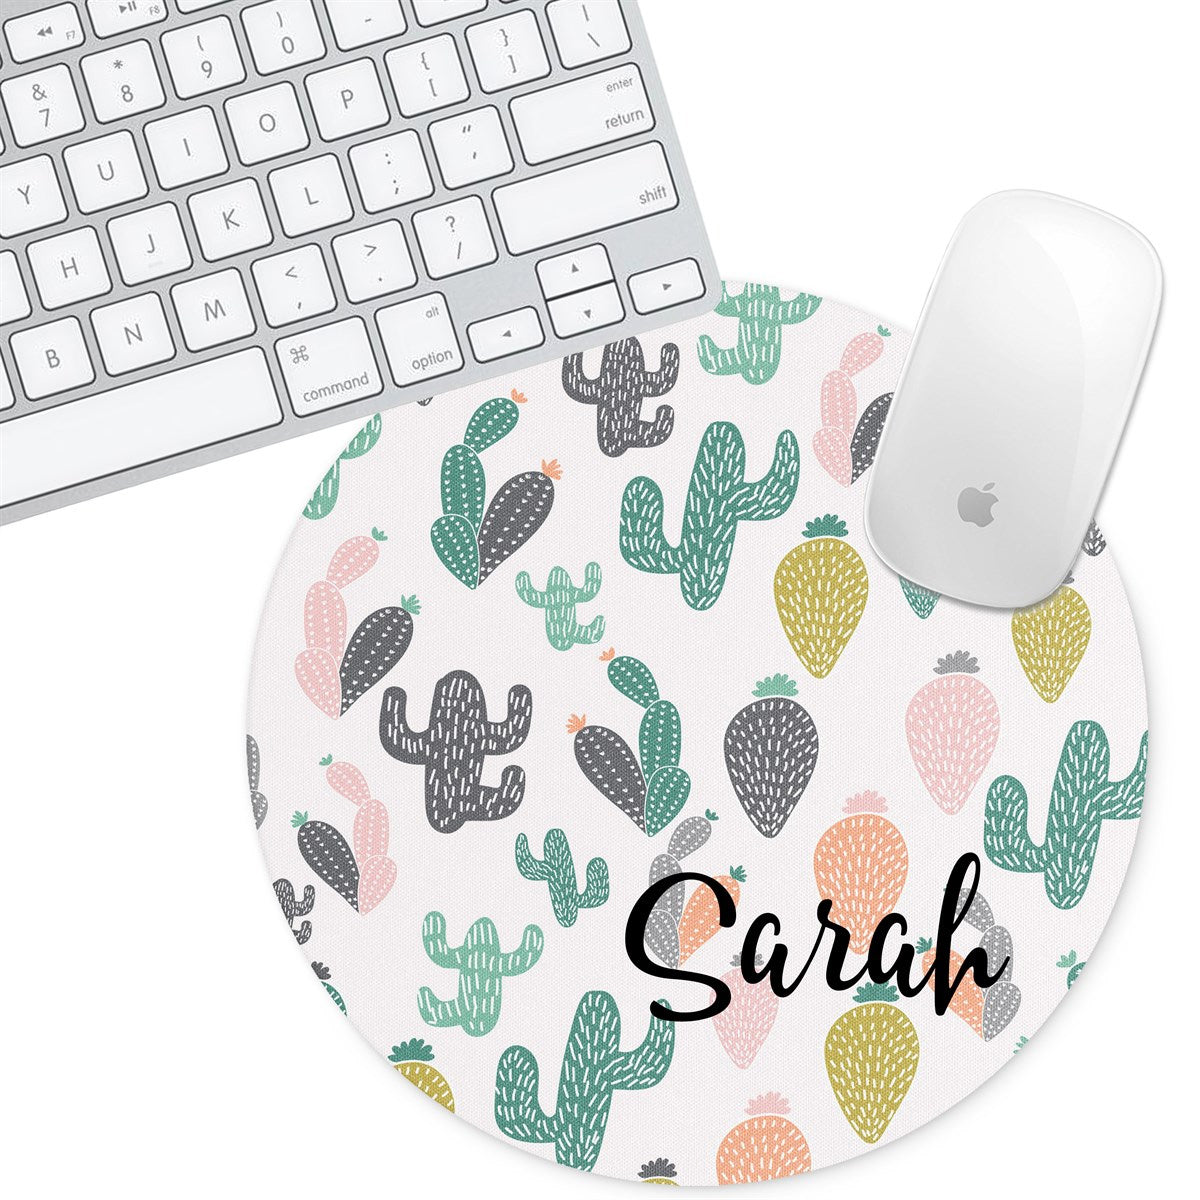 Personalized Round Mouse Pad - Cactus Sarah - Second East